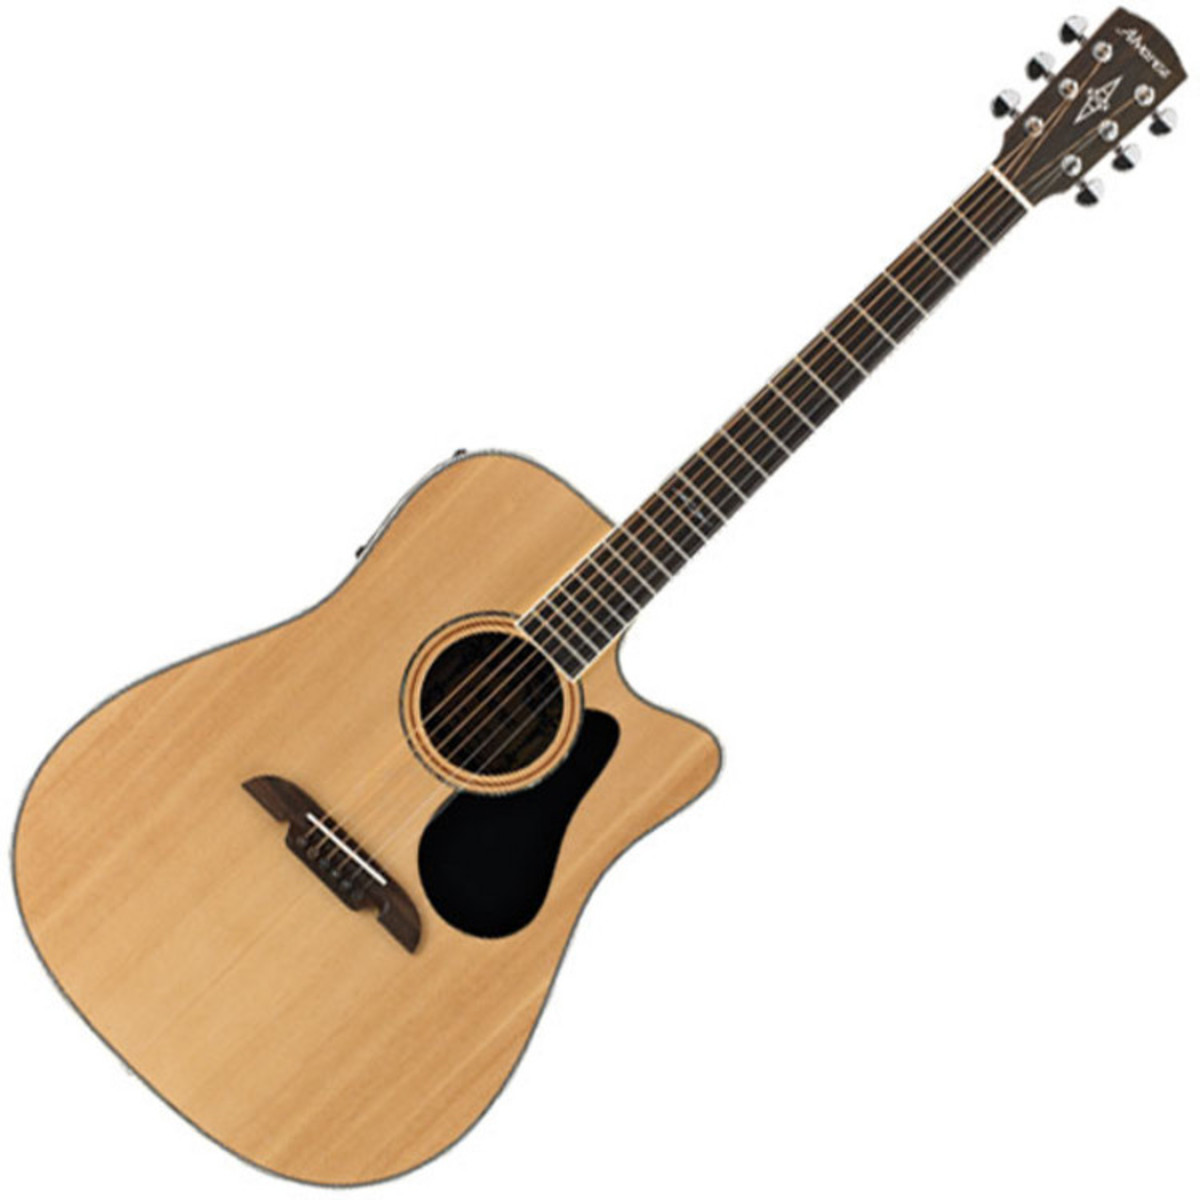 alvarez ad90ce dreadnought electro acoustic natural nearly new at. Black Bedroom Furniture Sets. Home Design Ideas